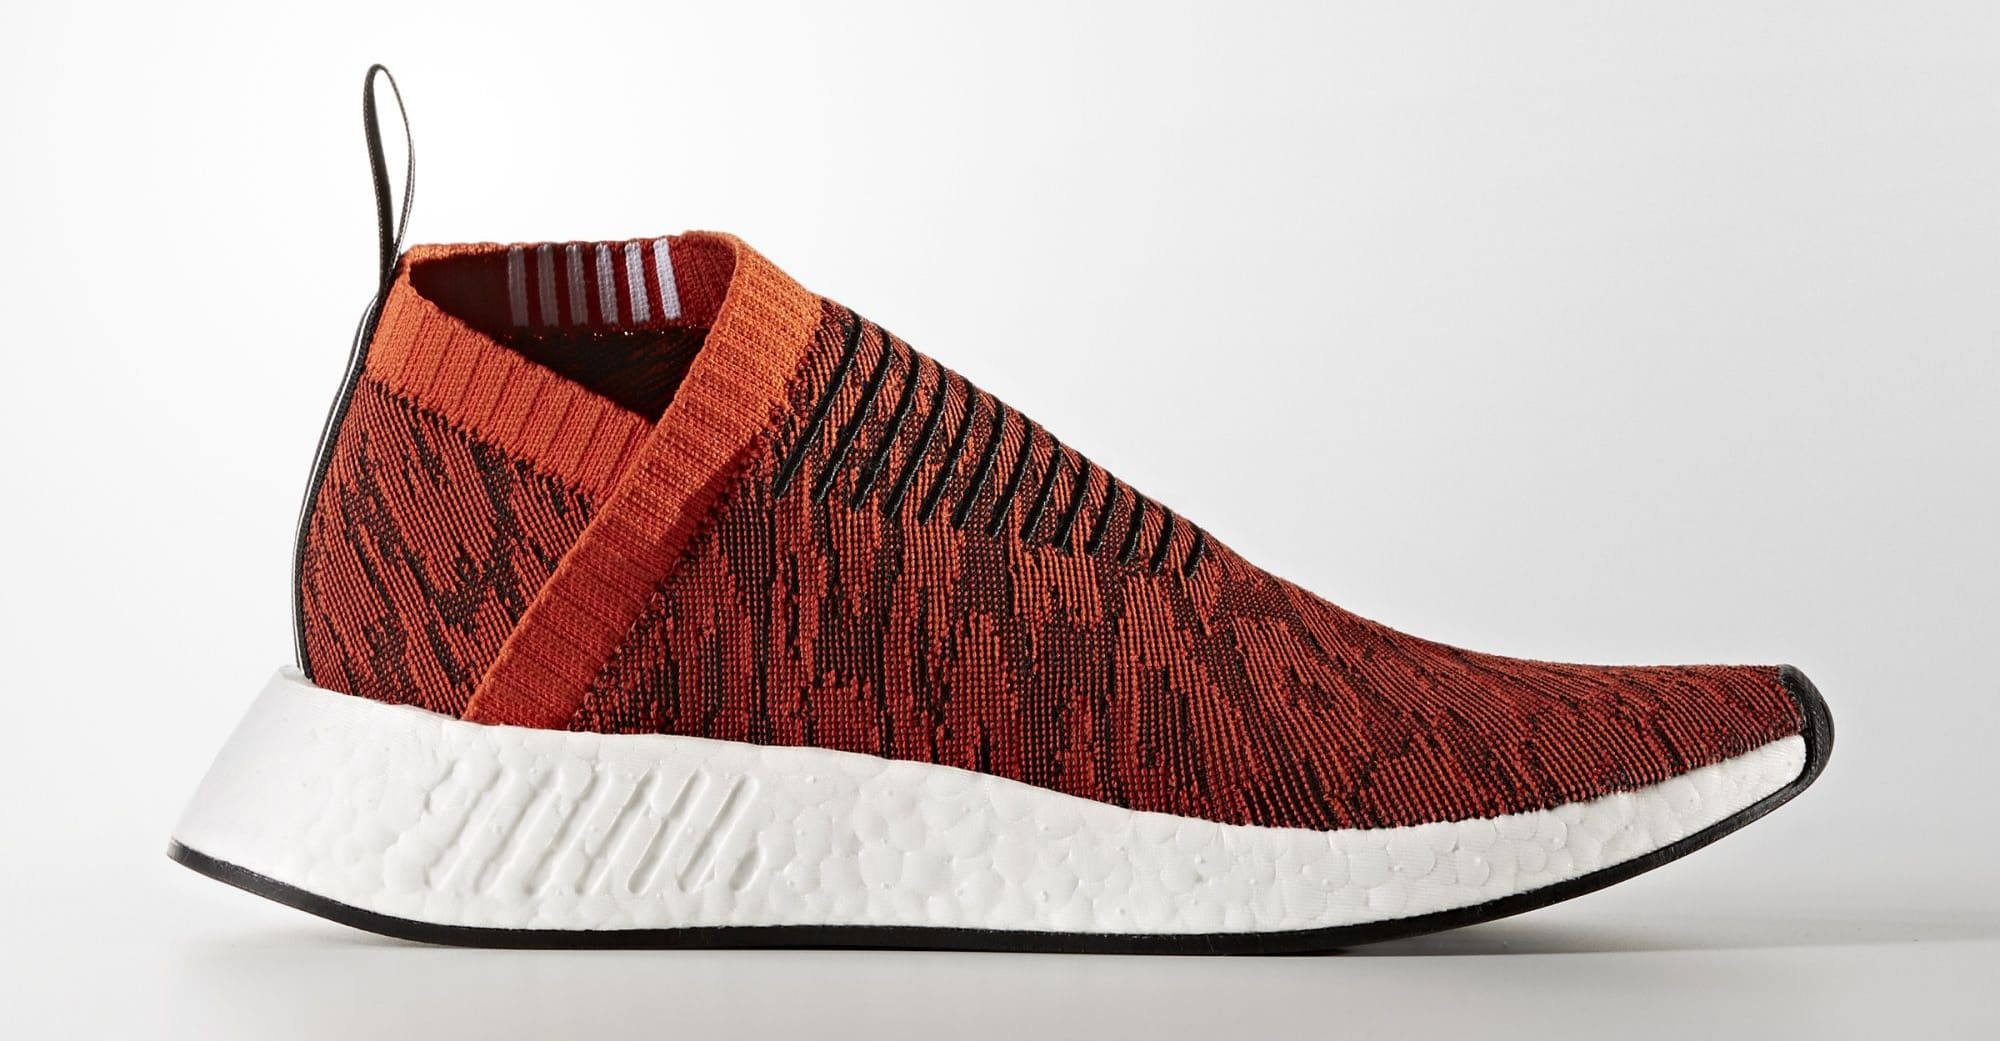 adidas nmd cs2 pack release date roundup the sneakers. Black Bedroom Furniture Sets. Home Design Ideas